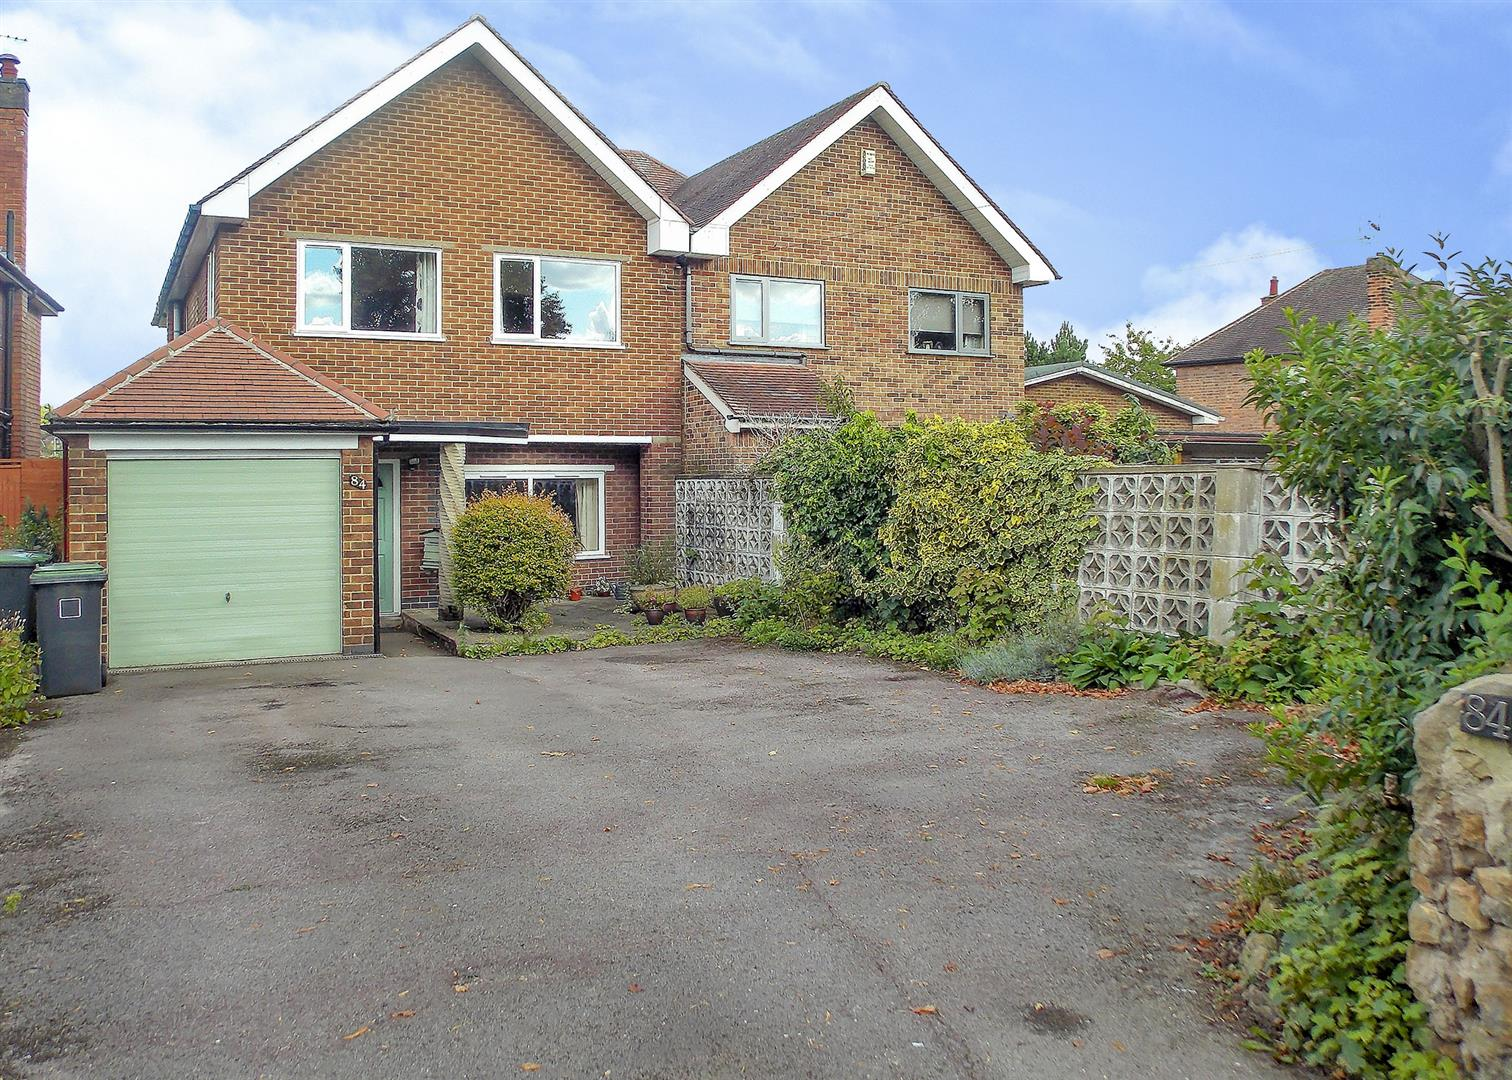 4 Bedrooms Semi Detached House for sale in Stapleford Lane, Toton